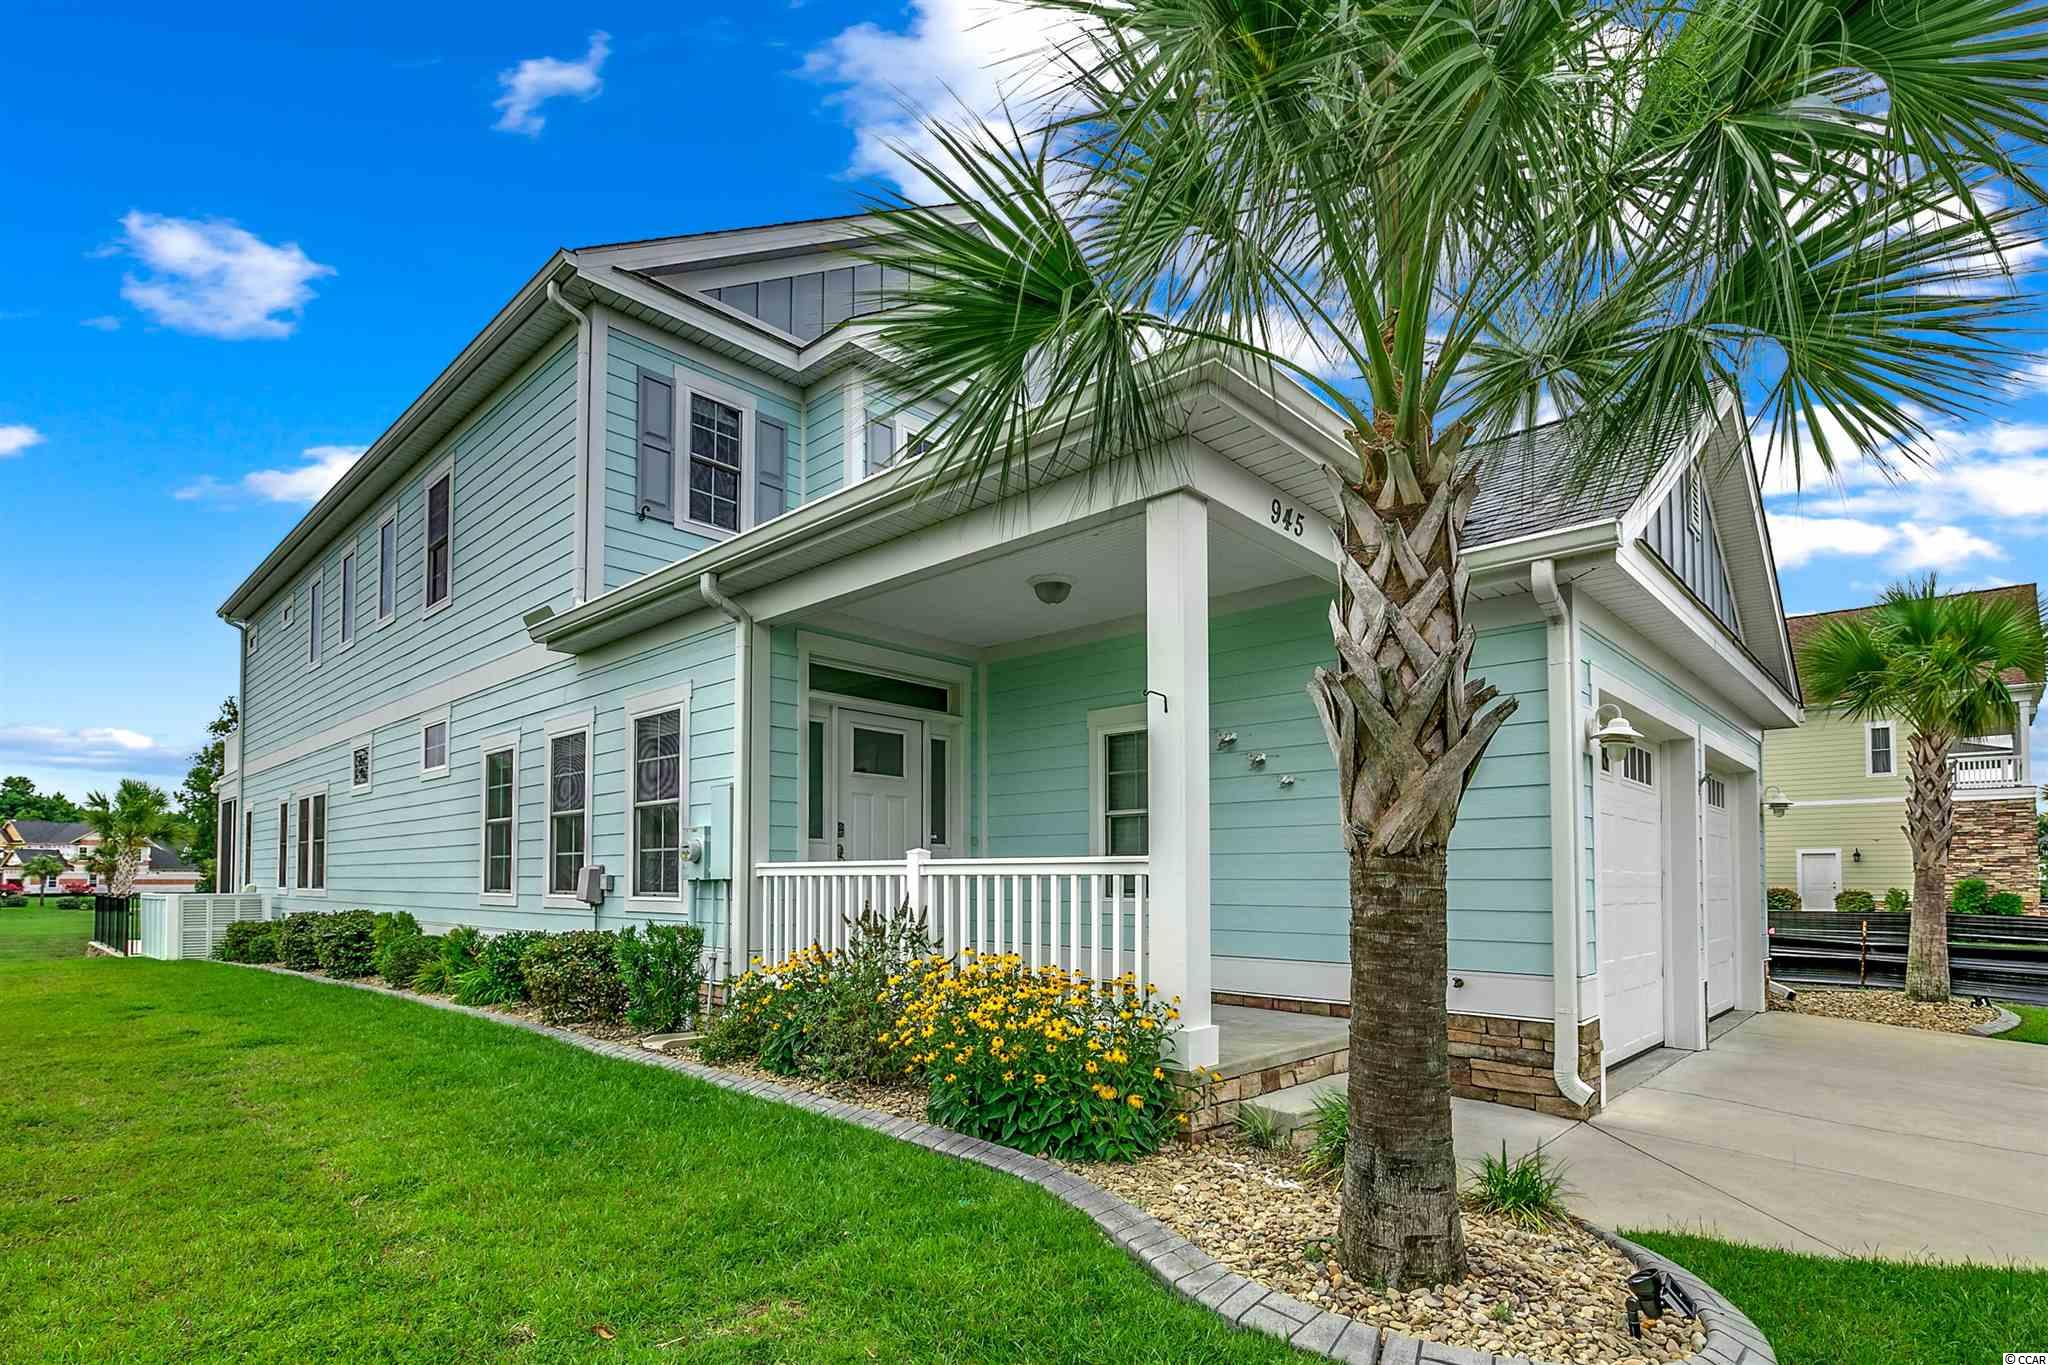 This stunning, one of a kind 5 bedroom, 4 bath custom-built builder's model has an open floor plan with plenty of natural light as well as breathtaking views of the pool, lake and sky.  Located in the gated and prestigious Waterway Palms Plantation neighborhood this turn key home is situated one block from the Intracoastal Waterway. When entering this immaculate and recent professionally painted home from the covered porch, you are greeted with soaring 2 story ceilings with wood grain plank tiles. There is a large modern chef's kitchen with tall cabinets topped with glassed display features, subway tile, gas stove, granite island, stainless appliances, breakfast nook and cozy benched alcove with a matching granite table and large walk-in Pantry. Adjacent to the kitchen is the living room with tray ceilings followed by the outdoor area which includes a Lanai with Eze-breeze windows and ample decking around the pool, perfect for entertaining. The spacious Master Suite which has direct views of the pool and lake.  A bedroom/office is also on the first floor. Upstairs, there is an open hallway concept providing an impressive view of the first level including a lofted sitting area/Den with a large deck boasting a beautiful view of the lake, pool and the absolutely gorgeous sunsets.  There are also three carpeted bedrooms and tiled bathrooms. This custom-built home features 2x6 construction, 24x12 salt water pool with heater/cooler and fence, Hardie Board siding, security system, irrigation, supplemental gas furnace to augment the heat pump on cold days, Rinnai tankless water heater and 2 car garage. The home has many upgrades including custom moulding, updated closet system, granite countertops and transom accent windows throughout. The community has a private clubhouse (gym, kitchen, functions area, pool table, multiple outdoor sittings), resort-style pool, children's pool, tennis courts, basketball area, playground, boat/RV storage, boat launch ramp, walking and biking